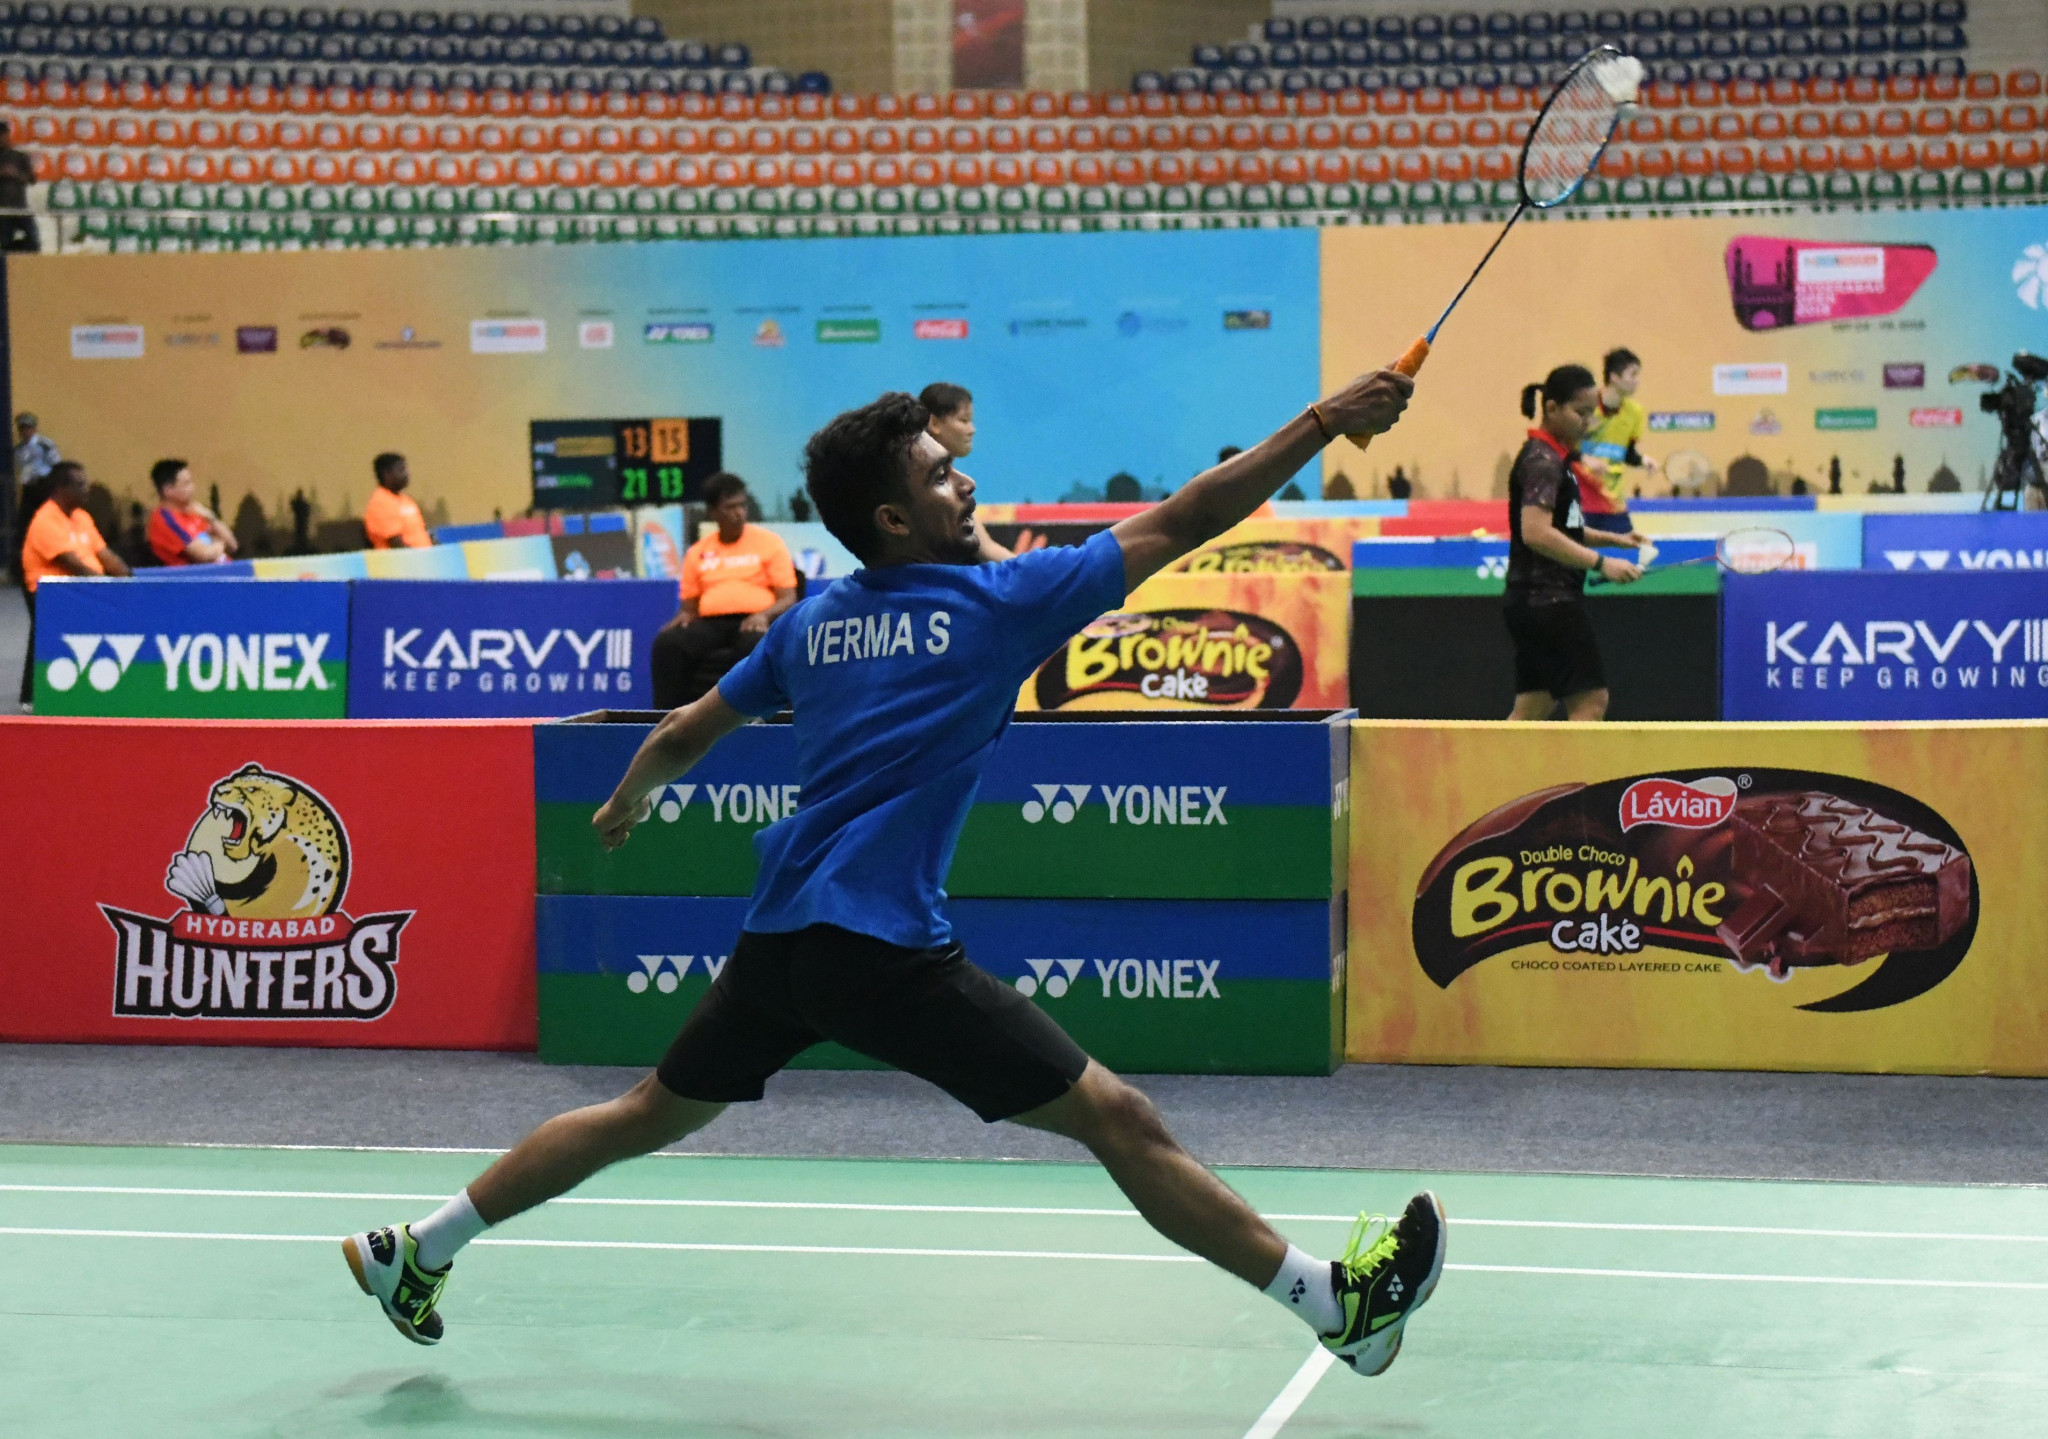 India's top seed Sameer Verma wins his men's singles quarter-final today at the BWF Hyderabad Open ©BWF